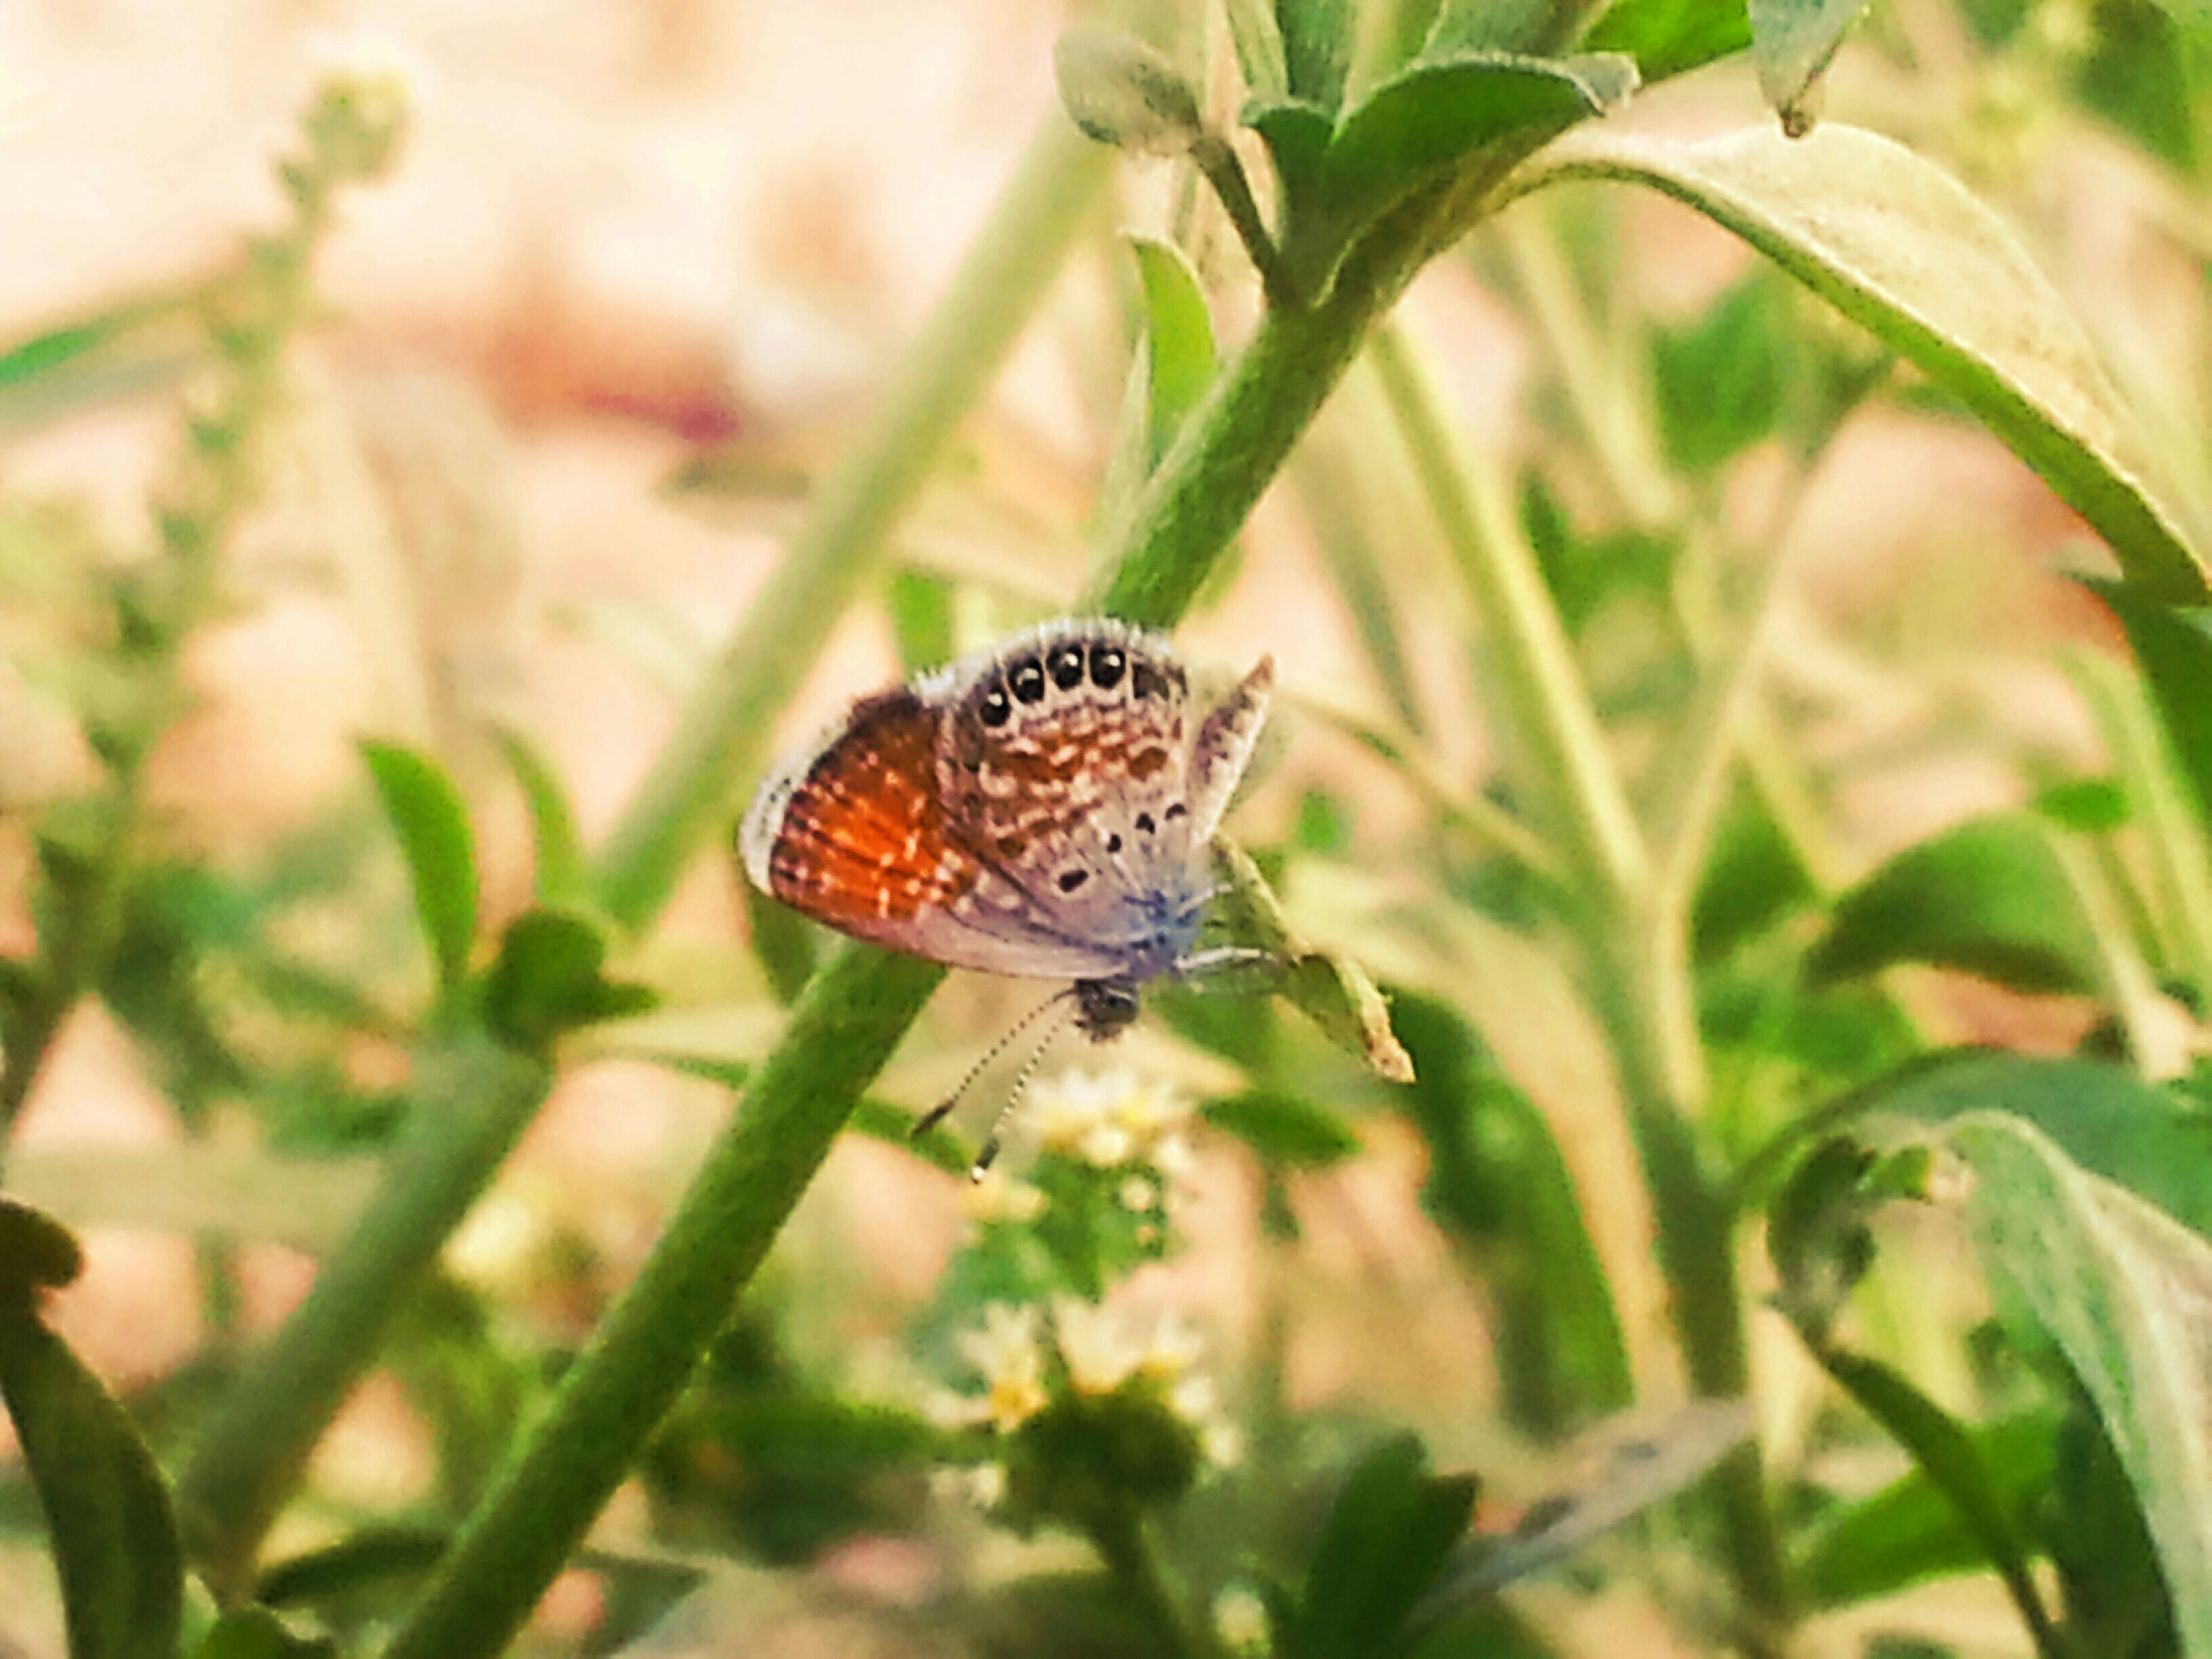 one animal, animal themes, animals in the wild, wildlife, insect, butterfly - insect, plant, leaf, close-up, butterfly, focus on foreground, nature, growth, green color, beauty in nature, natural pattern, flower, animal markings, fragility, outdoors